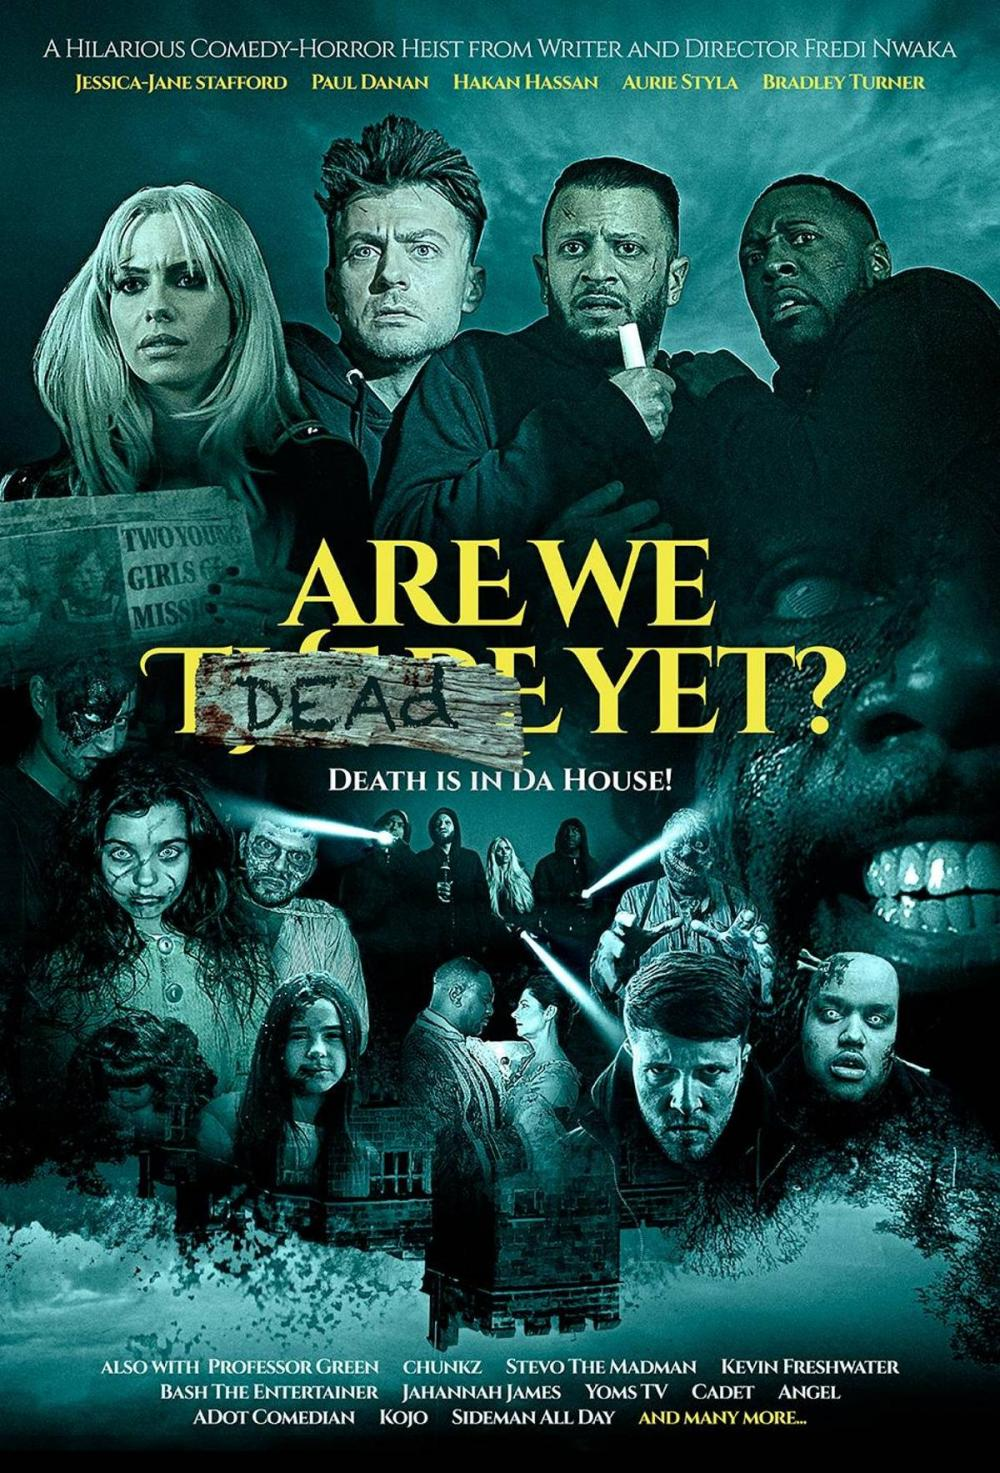 BRAND NEW Are We Dead Yet? poster